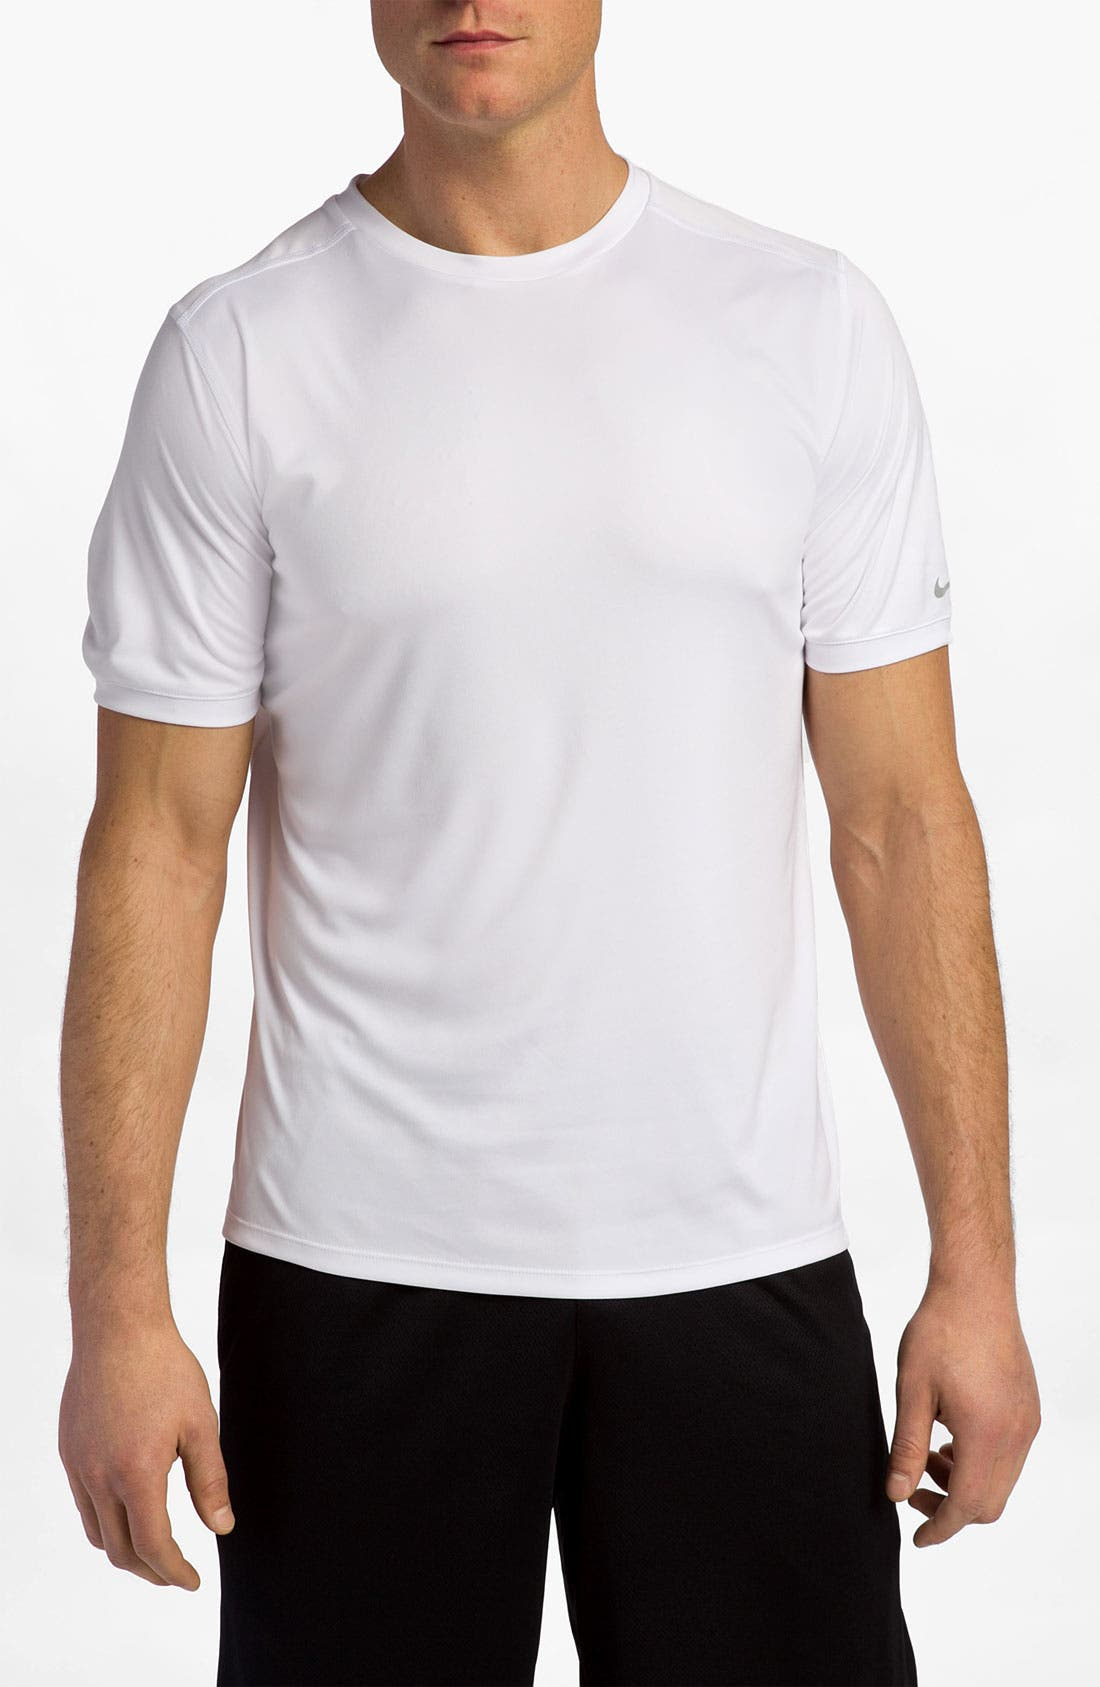 Main Image - Nike 'Relay' Dri-FIT T-Shirt